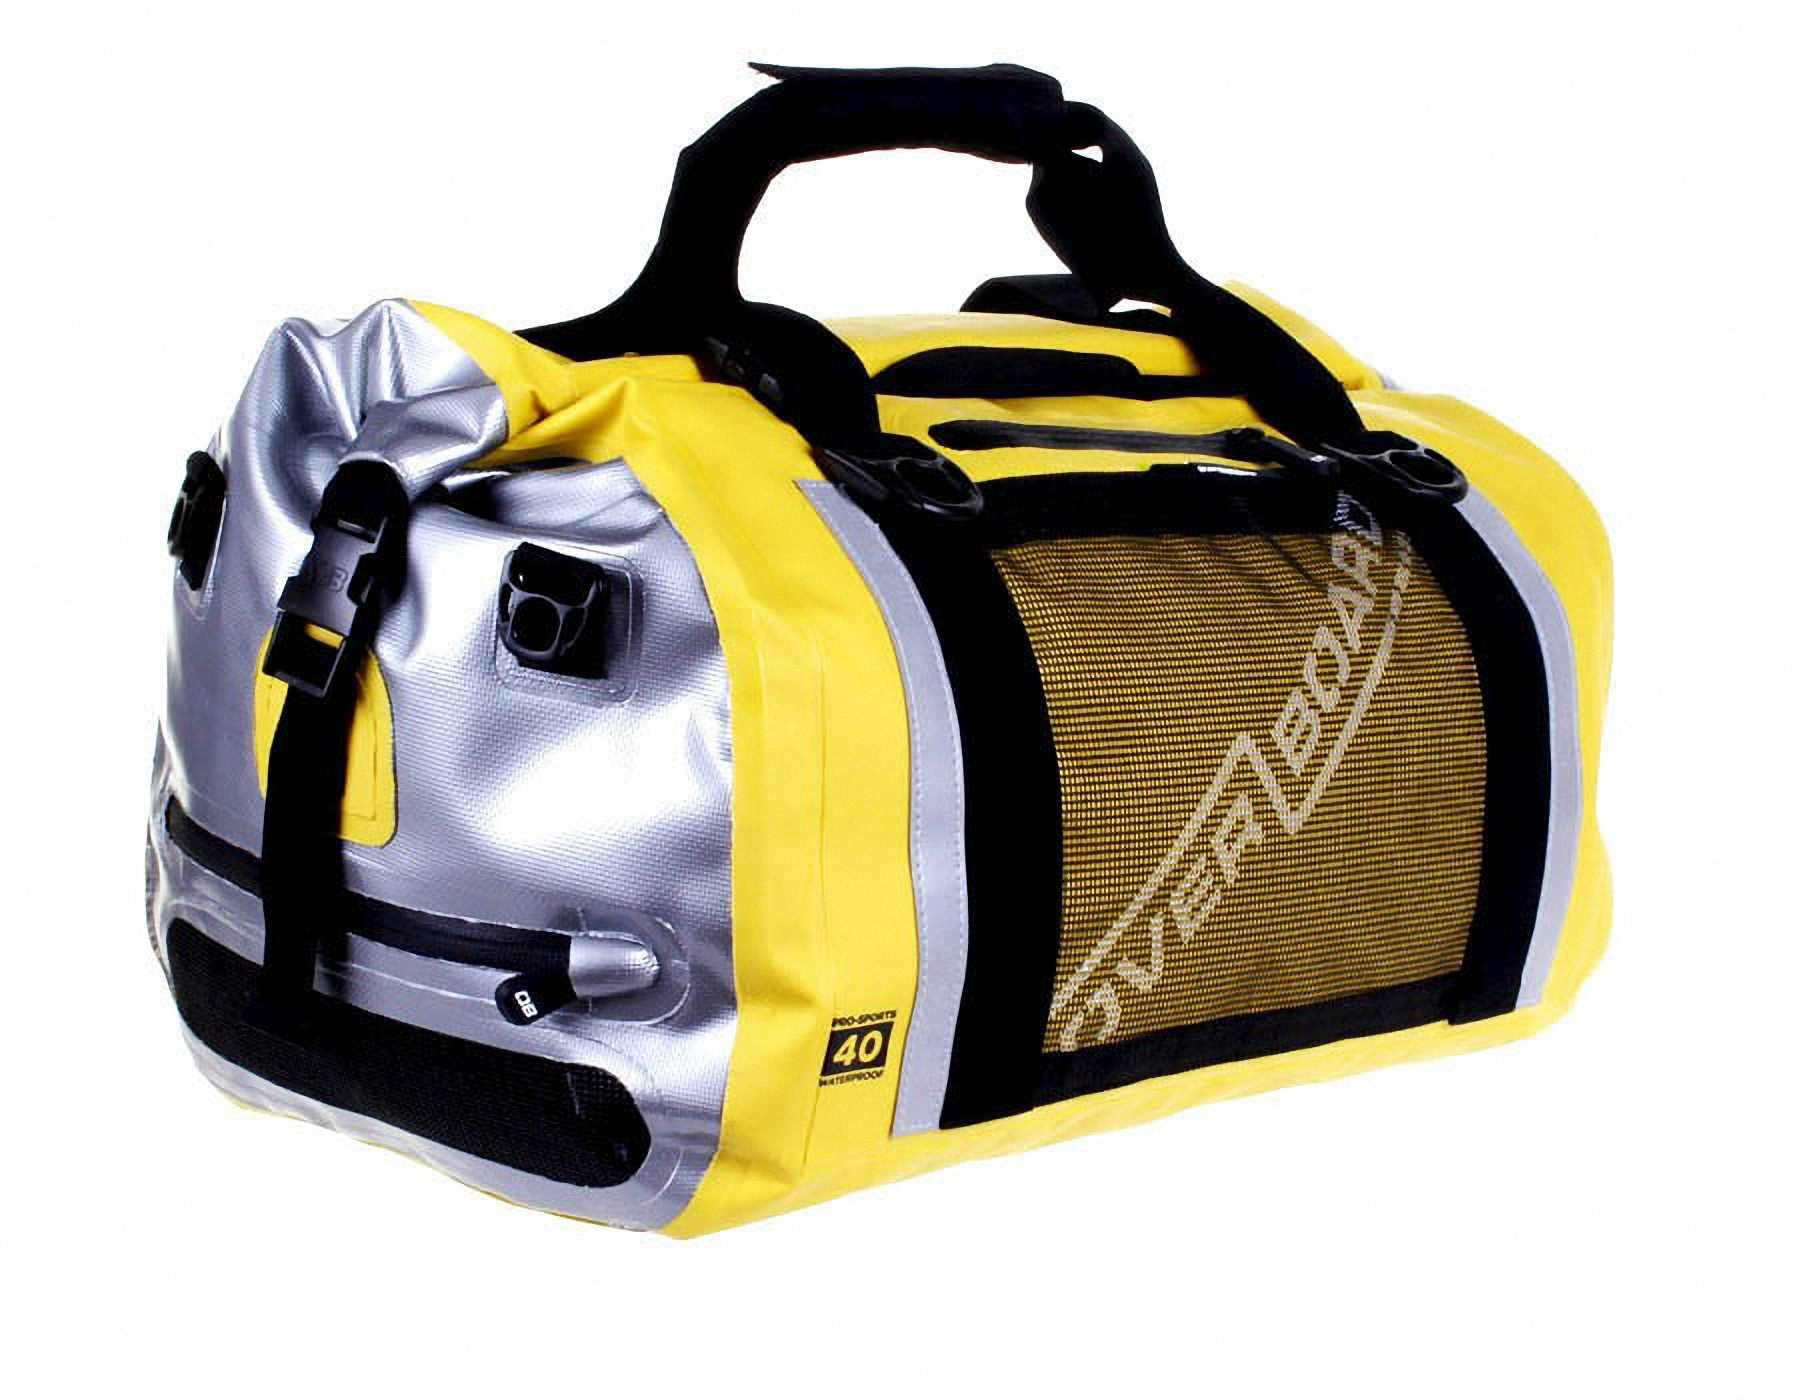 Водонепроницаемая сумка OverBoard OB1153Y - Pro-Sports Waterproof Duffel Bag - 40 литров.  Фото 2